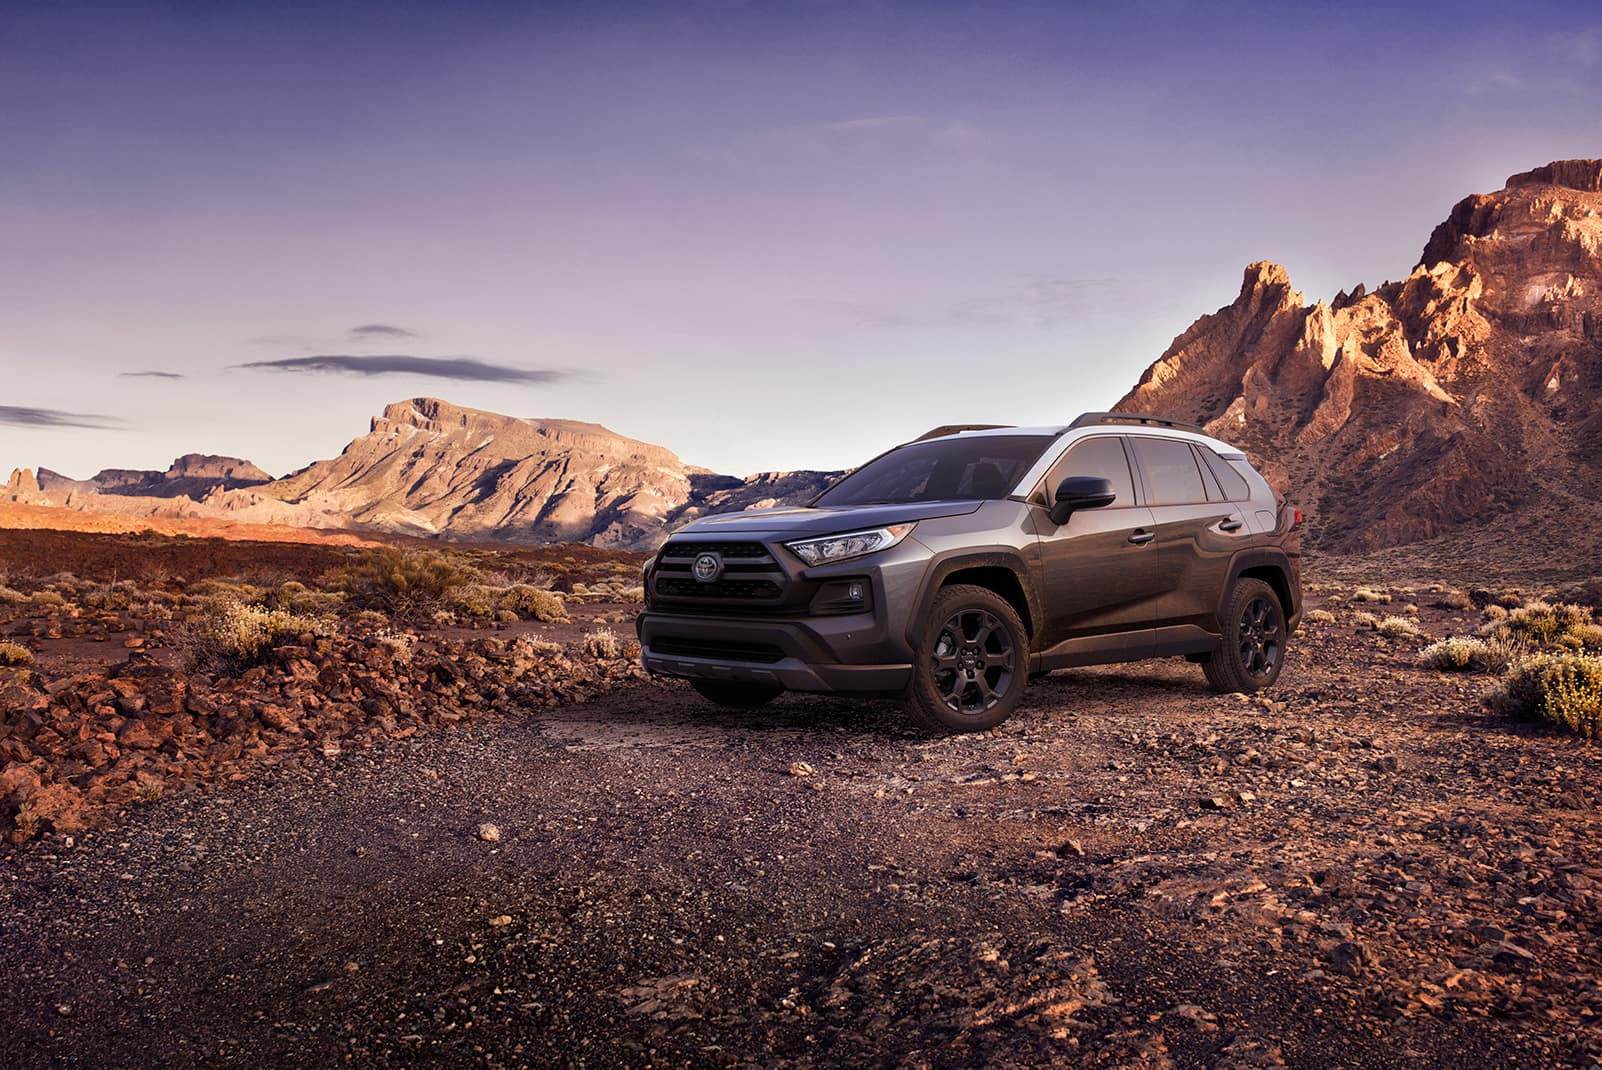 Performance features of the 2020 Toyota RAV4 at Jim Coleman | grey 2020 RAV4 parked on mountain terrain